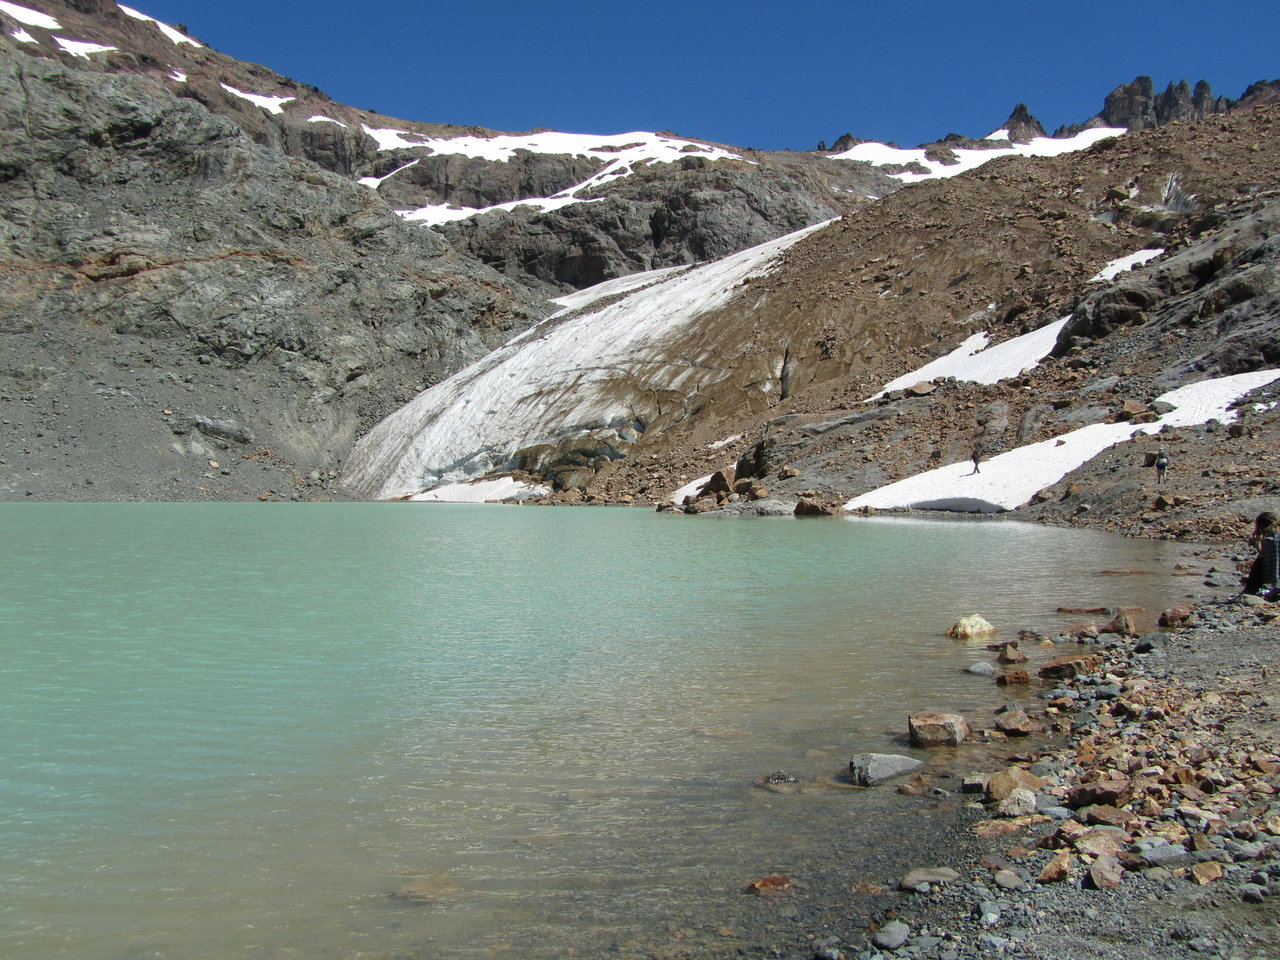 The shelter Ice Blue is located in one of the most beautiful spots in the region. | Argentina Photo Gallery